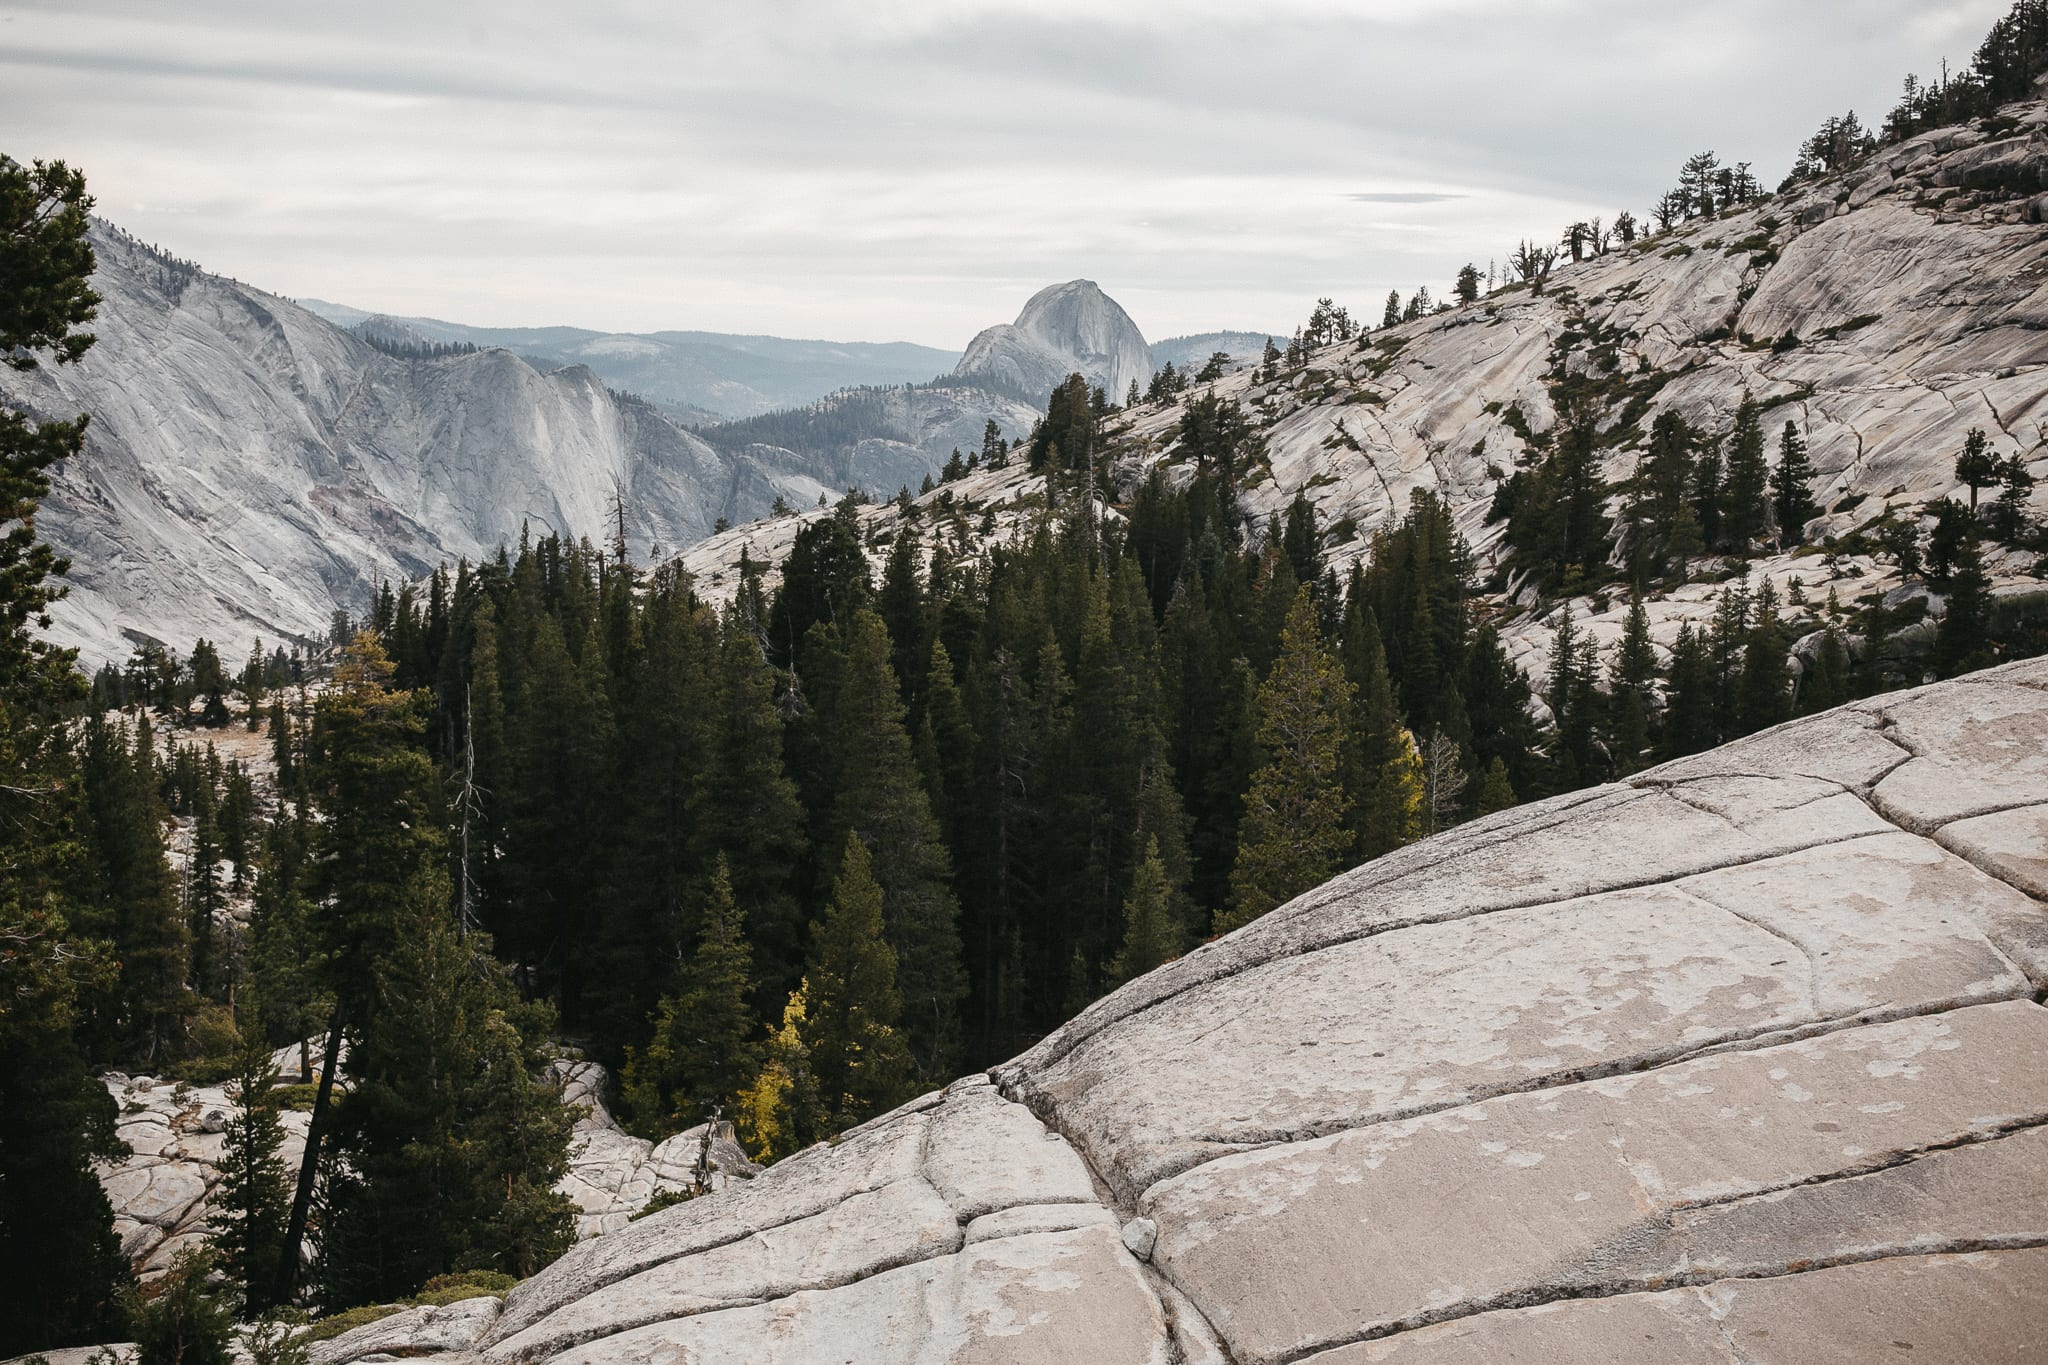 clouds-rest-yosemite-california-engagement-lifestyle-adventure-photographer-1